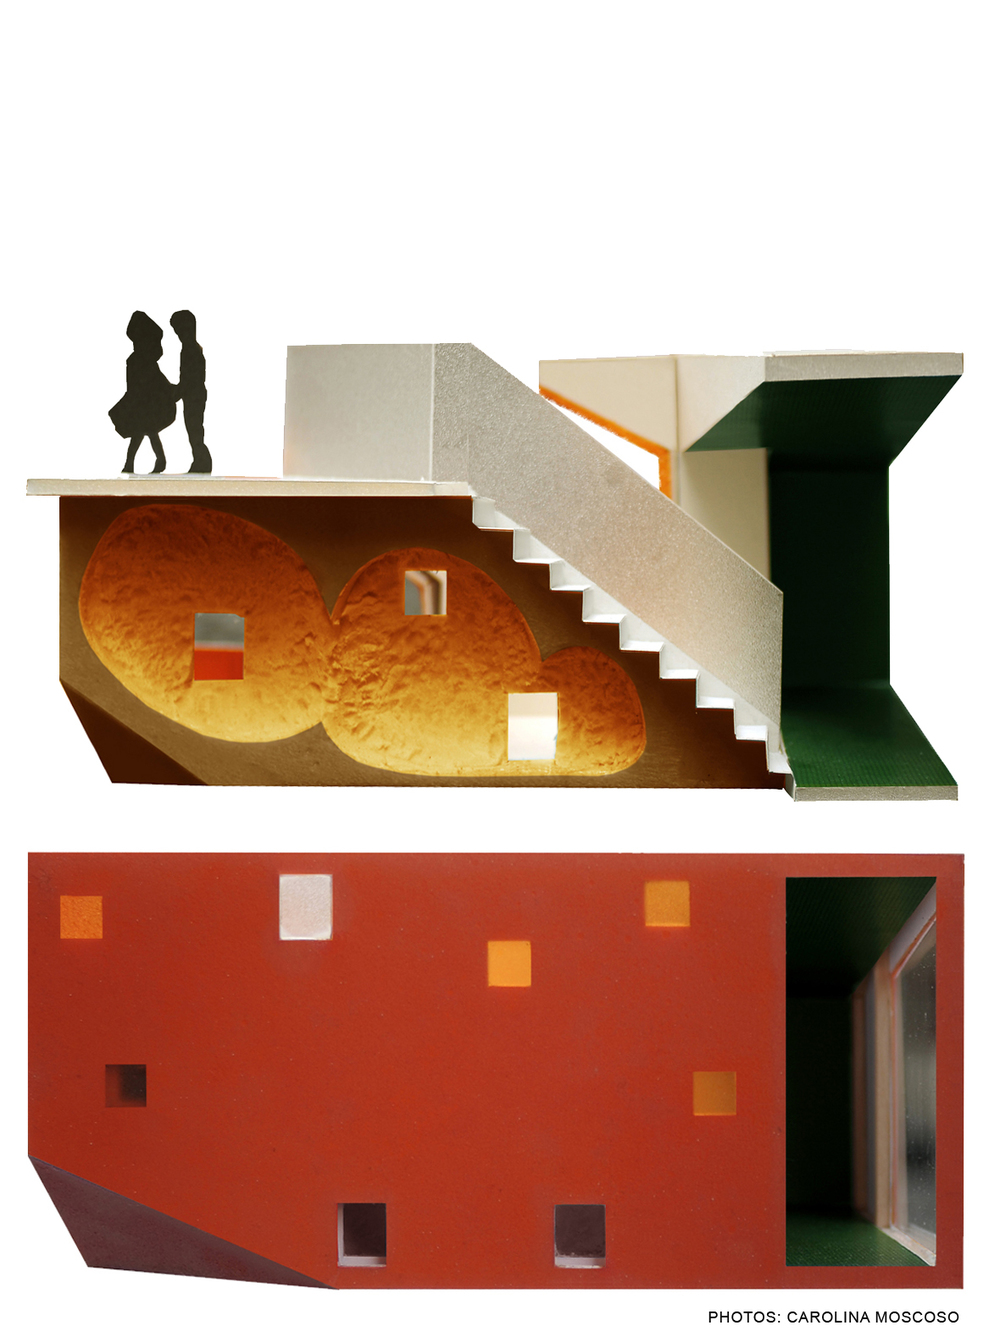 07_PLAYROOM INTERIOR+EXTERIOR.jpg